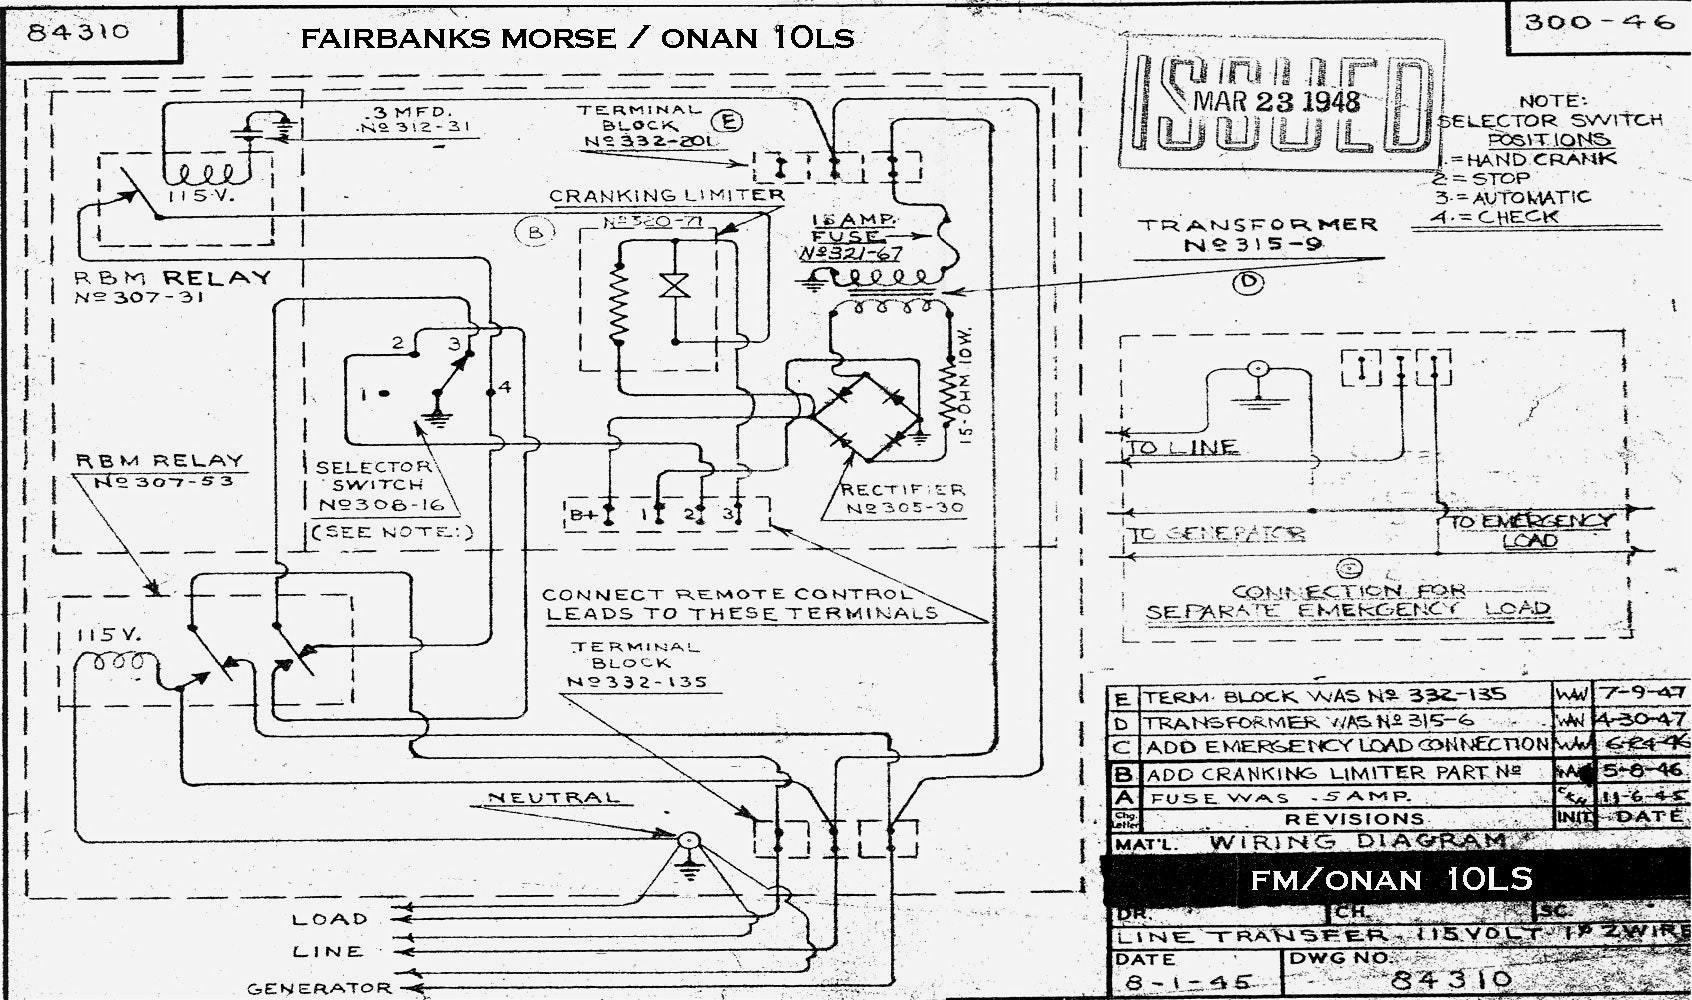 DOWNLOAD [GRAFIK] Wiring Diagram Onan Genset 6 5 Kw FULL Version HD Quality 5  Kw - ATLANTISGRAFIK.CHEFSCUISINIERSAIN.FRatlantisgrafik chefscuisiniersain fr